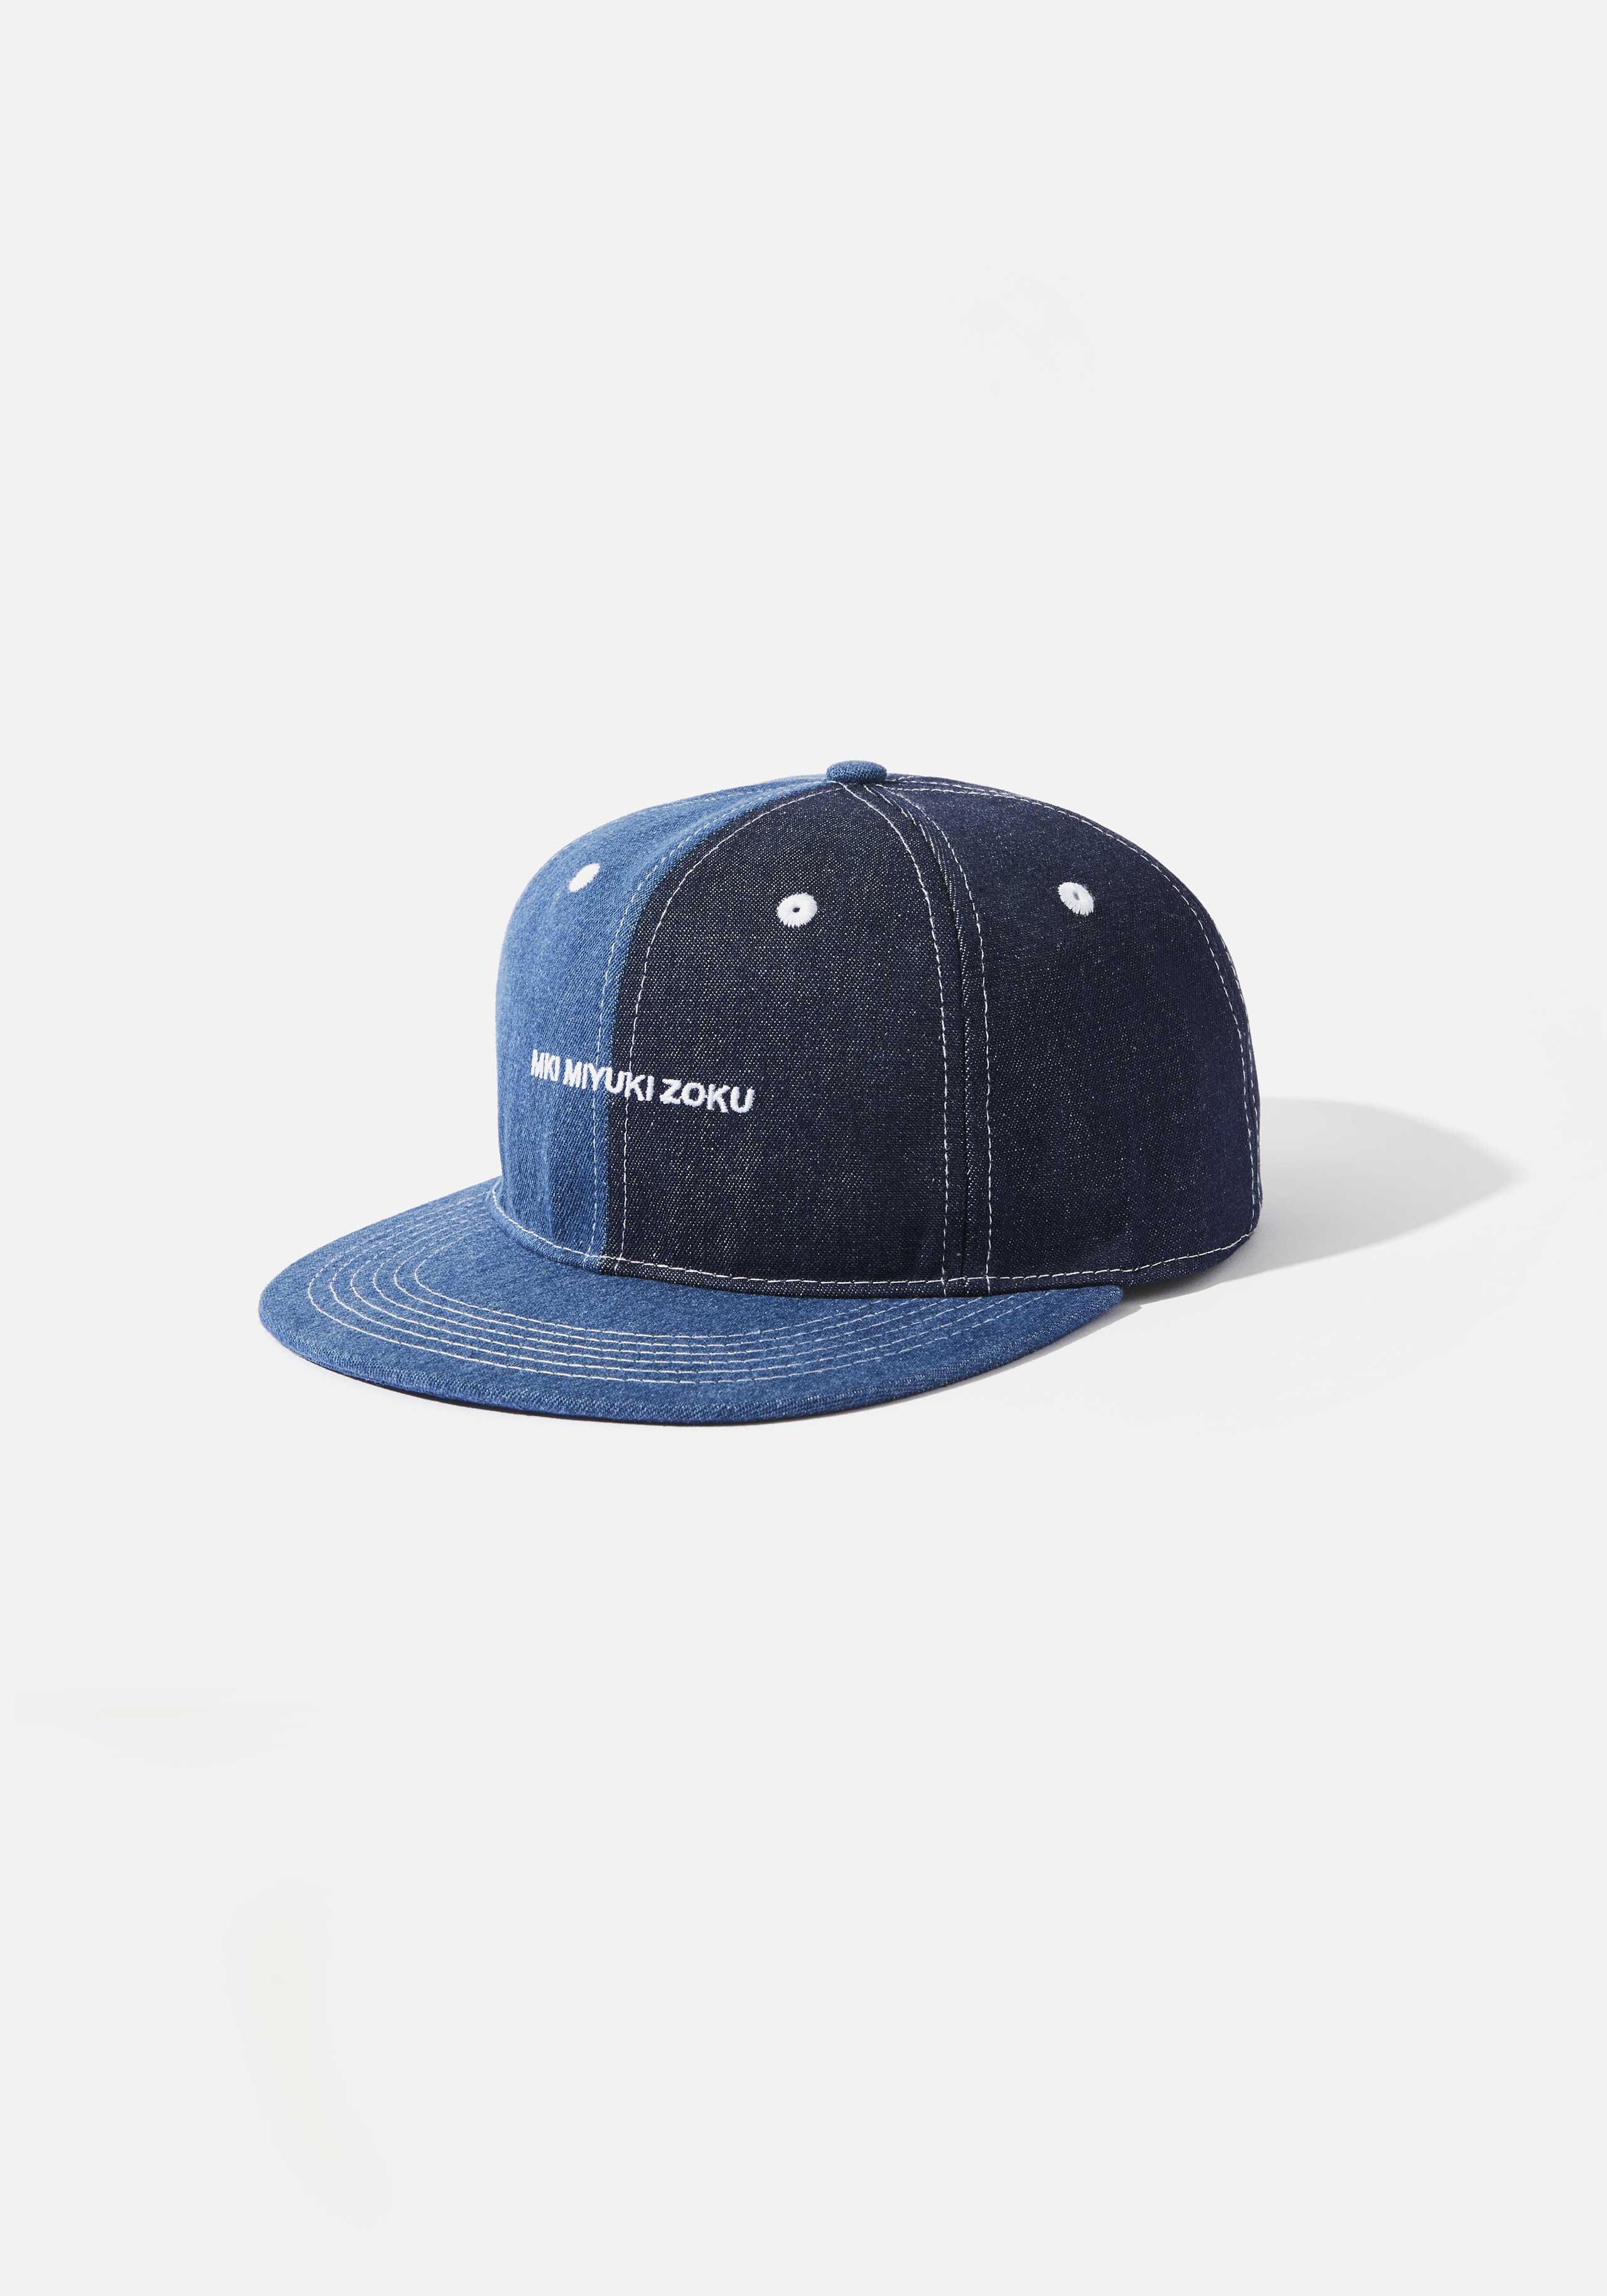 mki denim ball cap 1